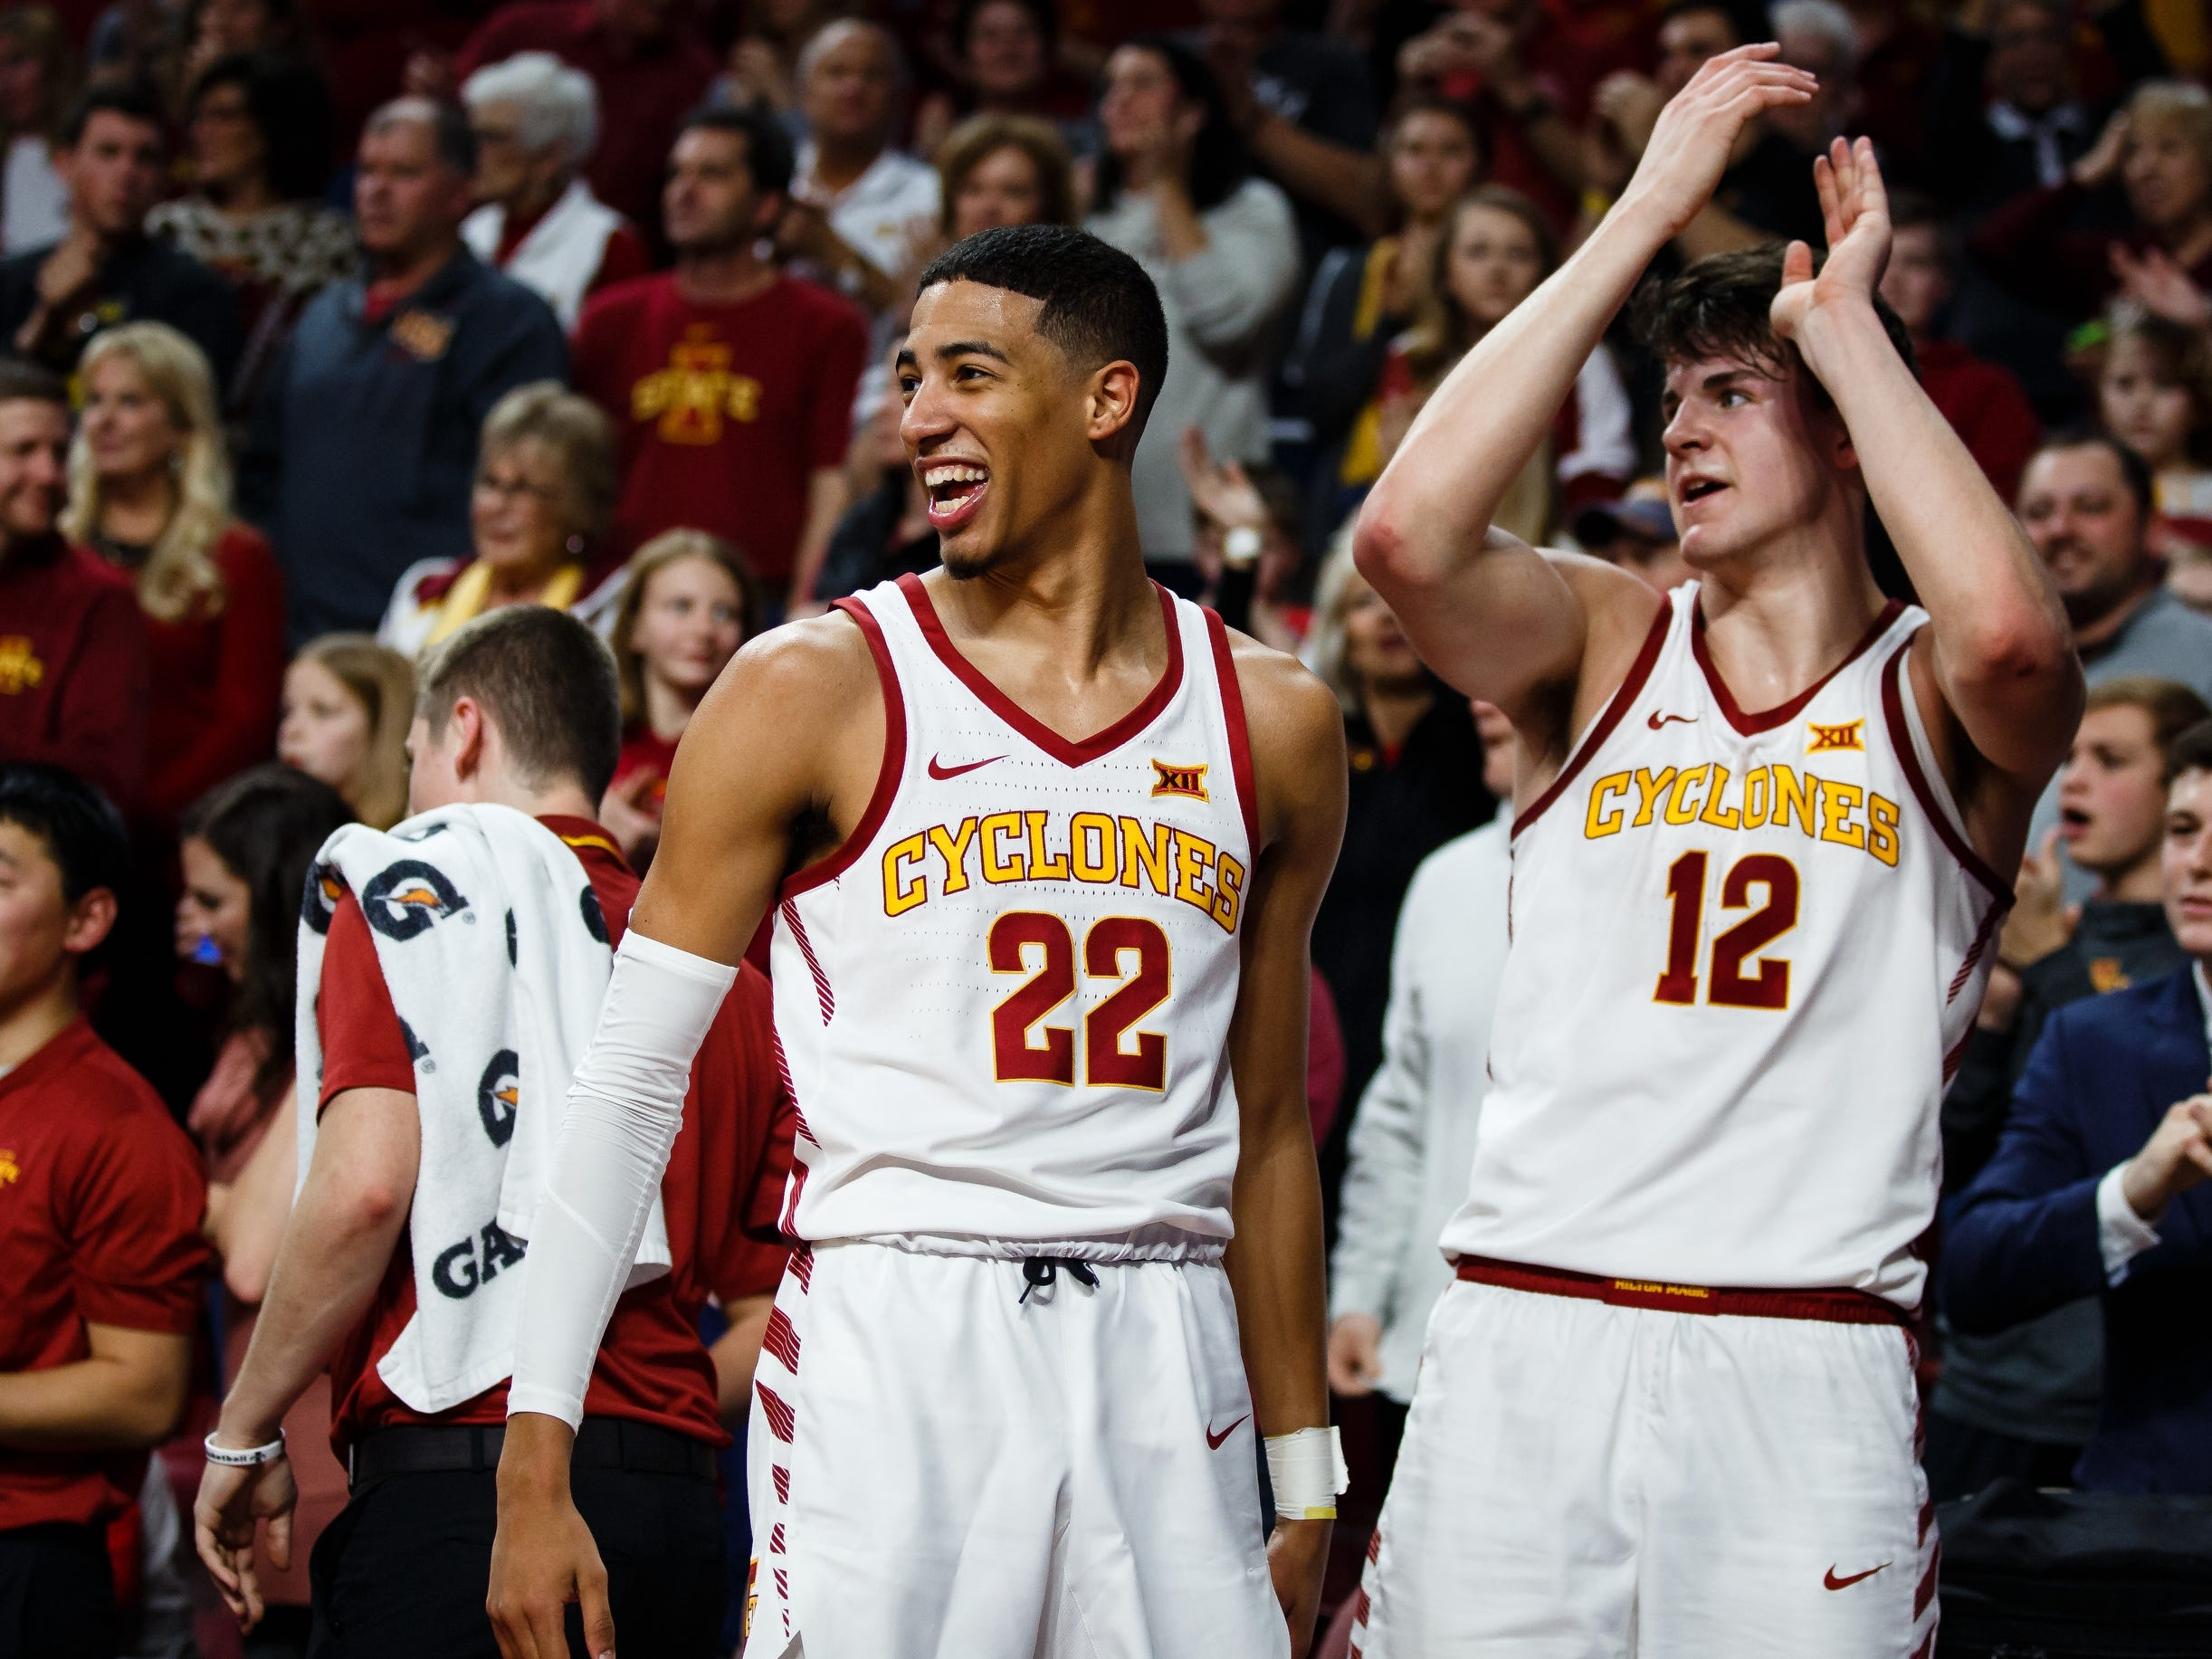 Iowa State's Tyrese Haliburton (22) and Iowa State's Michael Jacobson (12) cheer during the second half of their basketball game on Saturday, Jan. 5, 2019, in Ames. Iowa State would go on to beat Kansas 77-60.